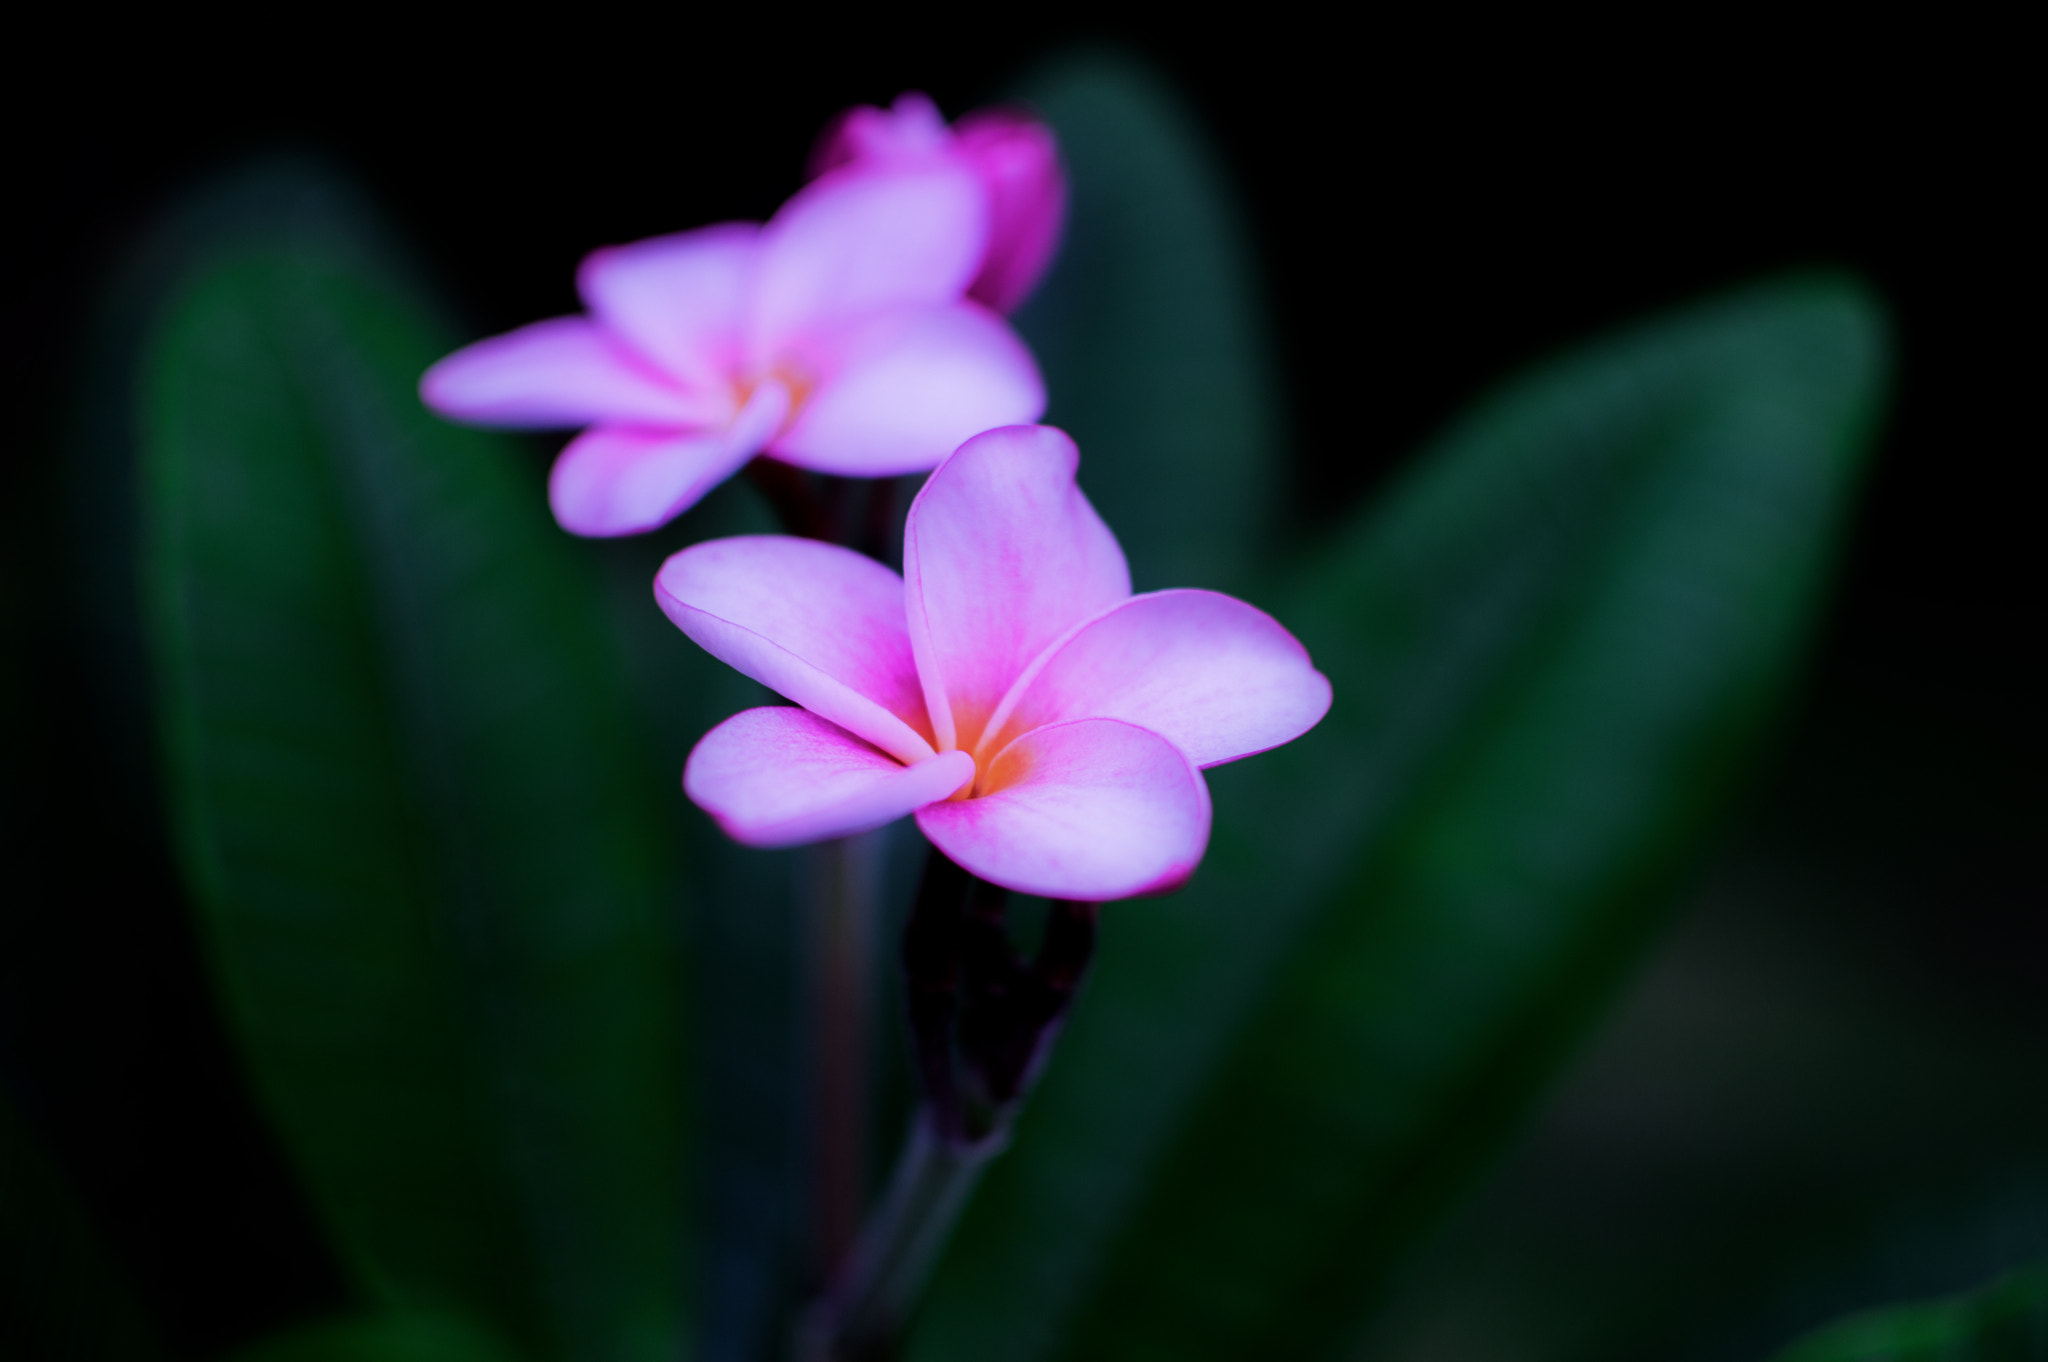 Photograph Flower by Cosmo Tee on 500px